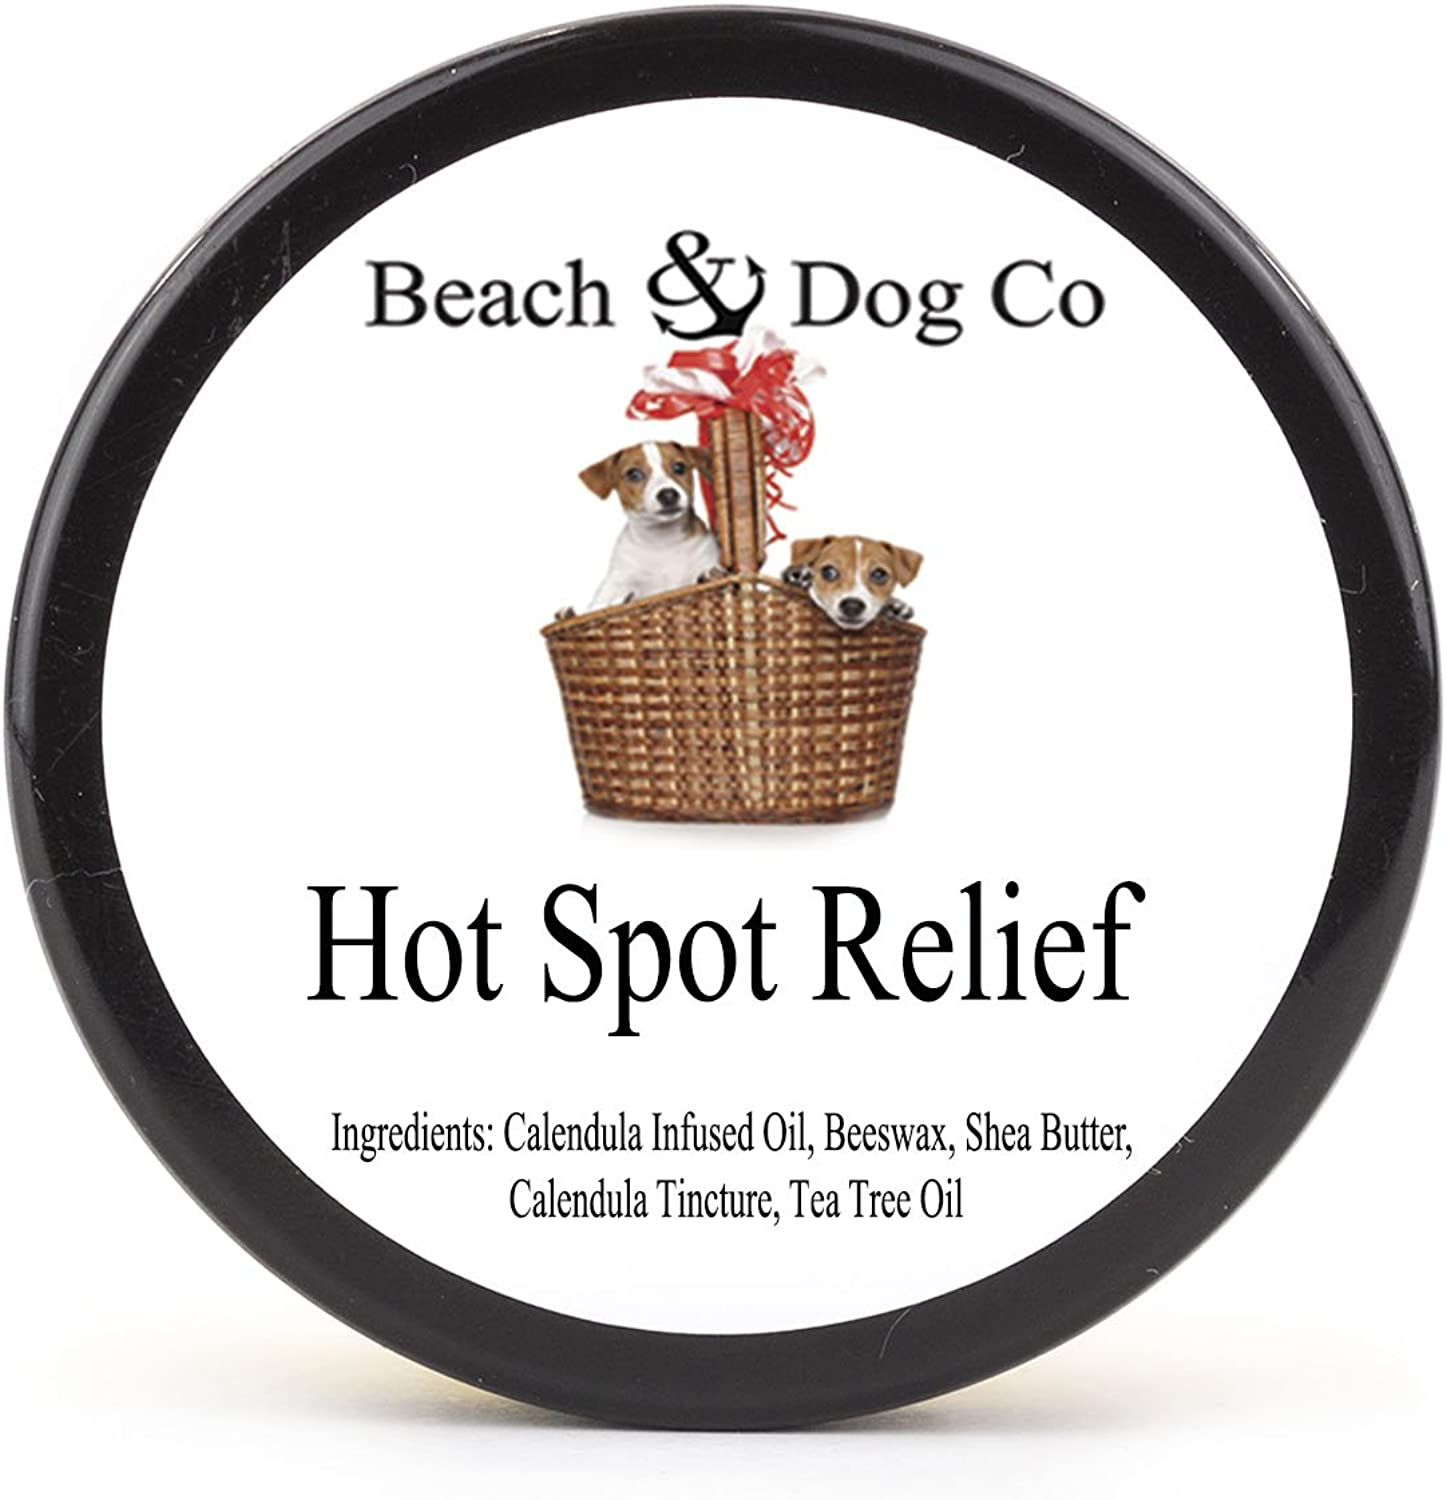 Hot Spot Relief  Natural Itch Relief for Dogs (2 oz)